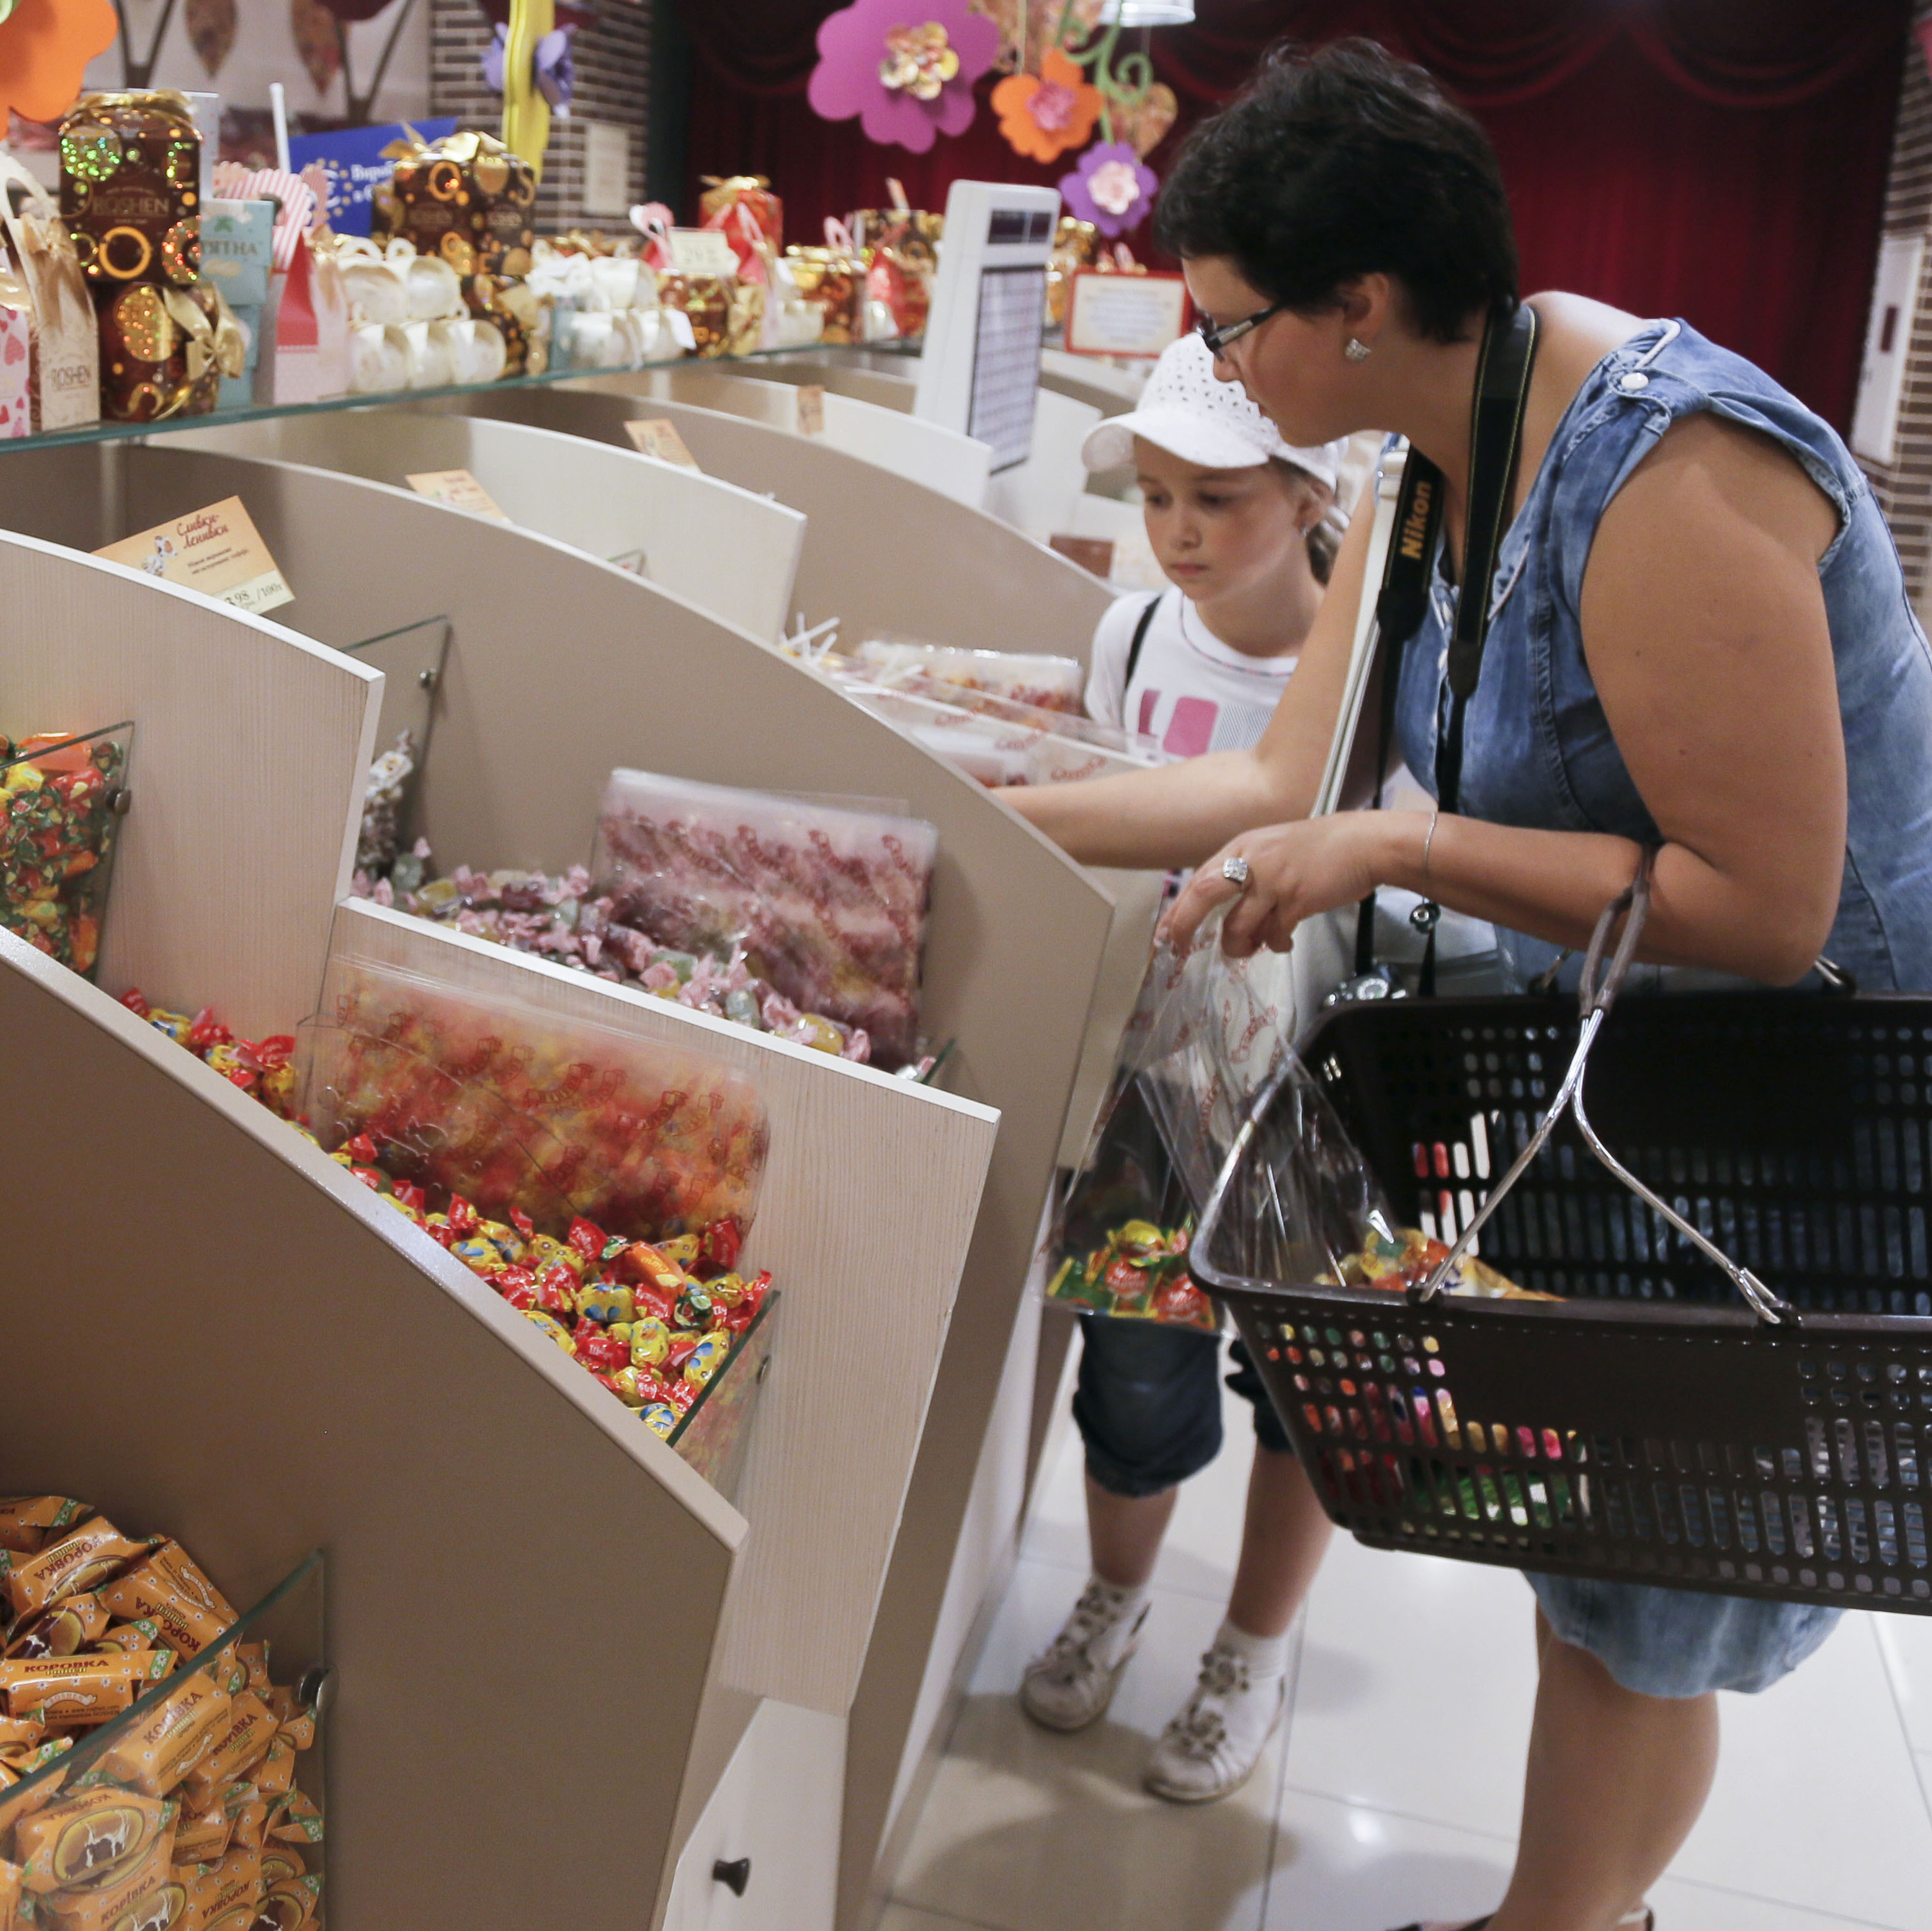 Visitors buy candies at a Roshen's shop in Kiev, Ukraine, in 2013.